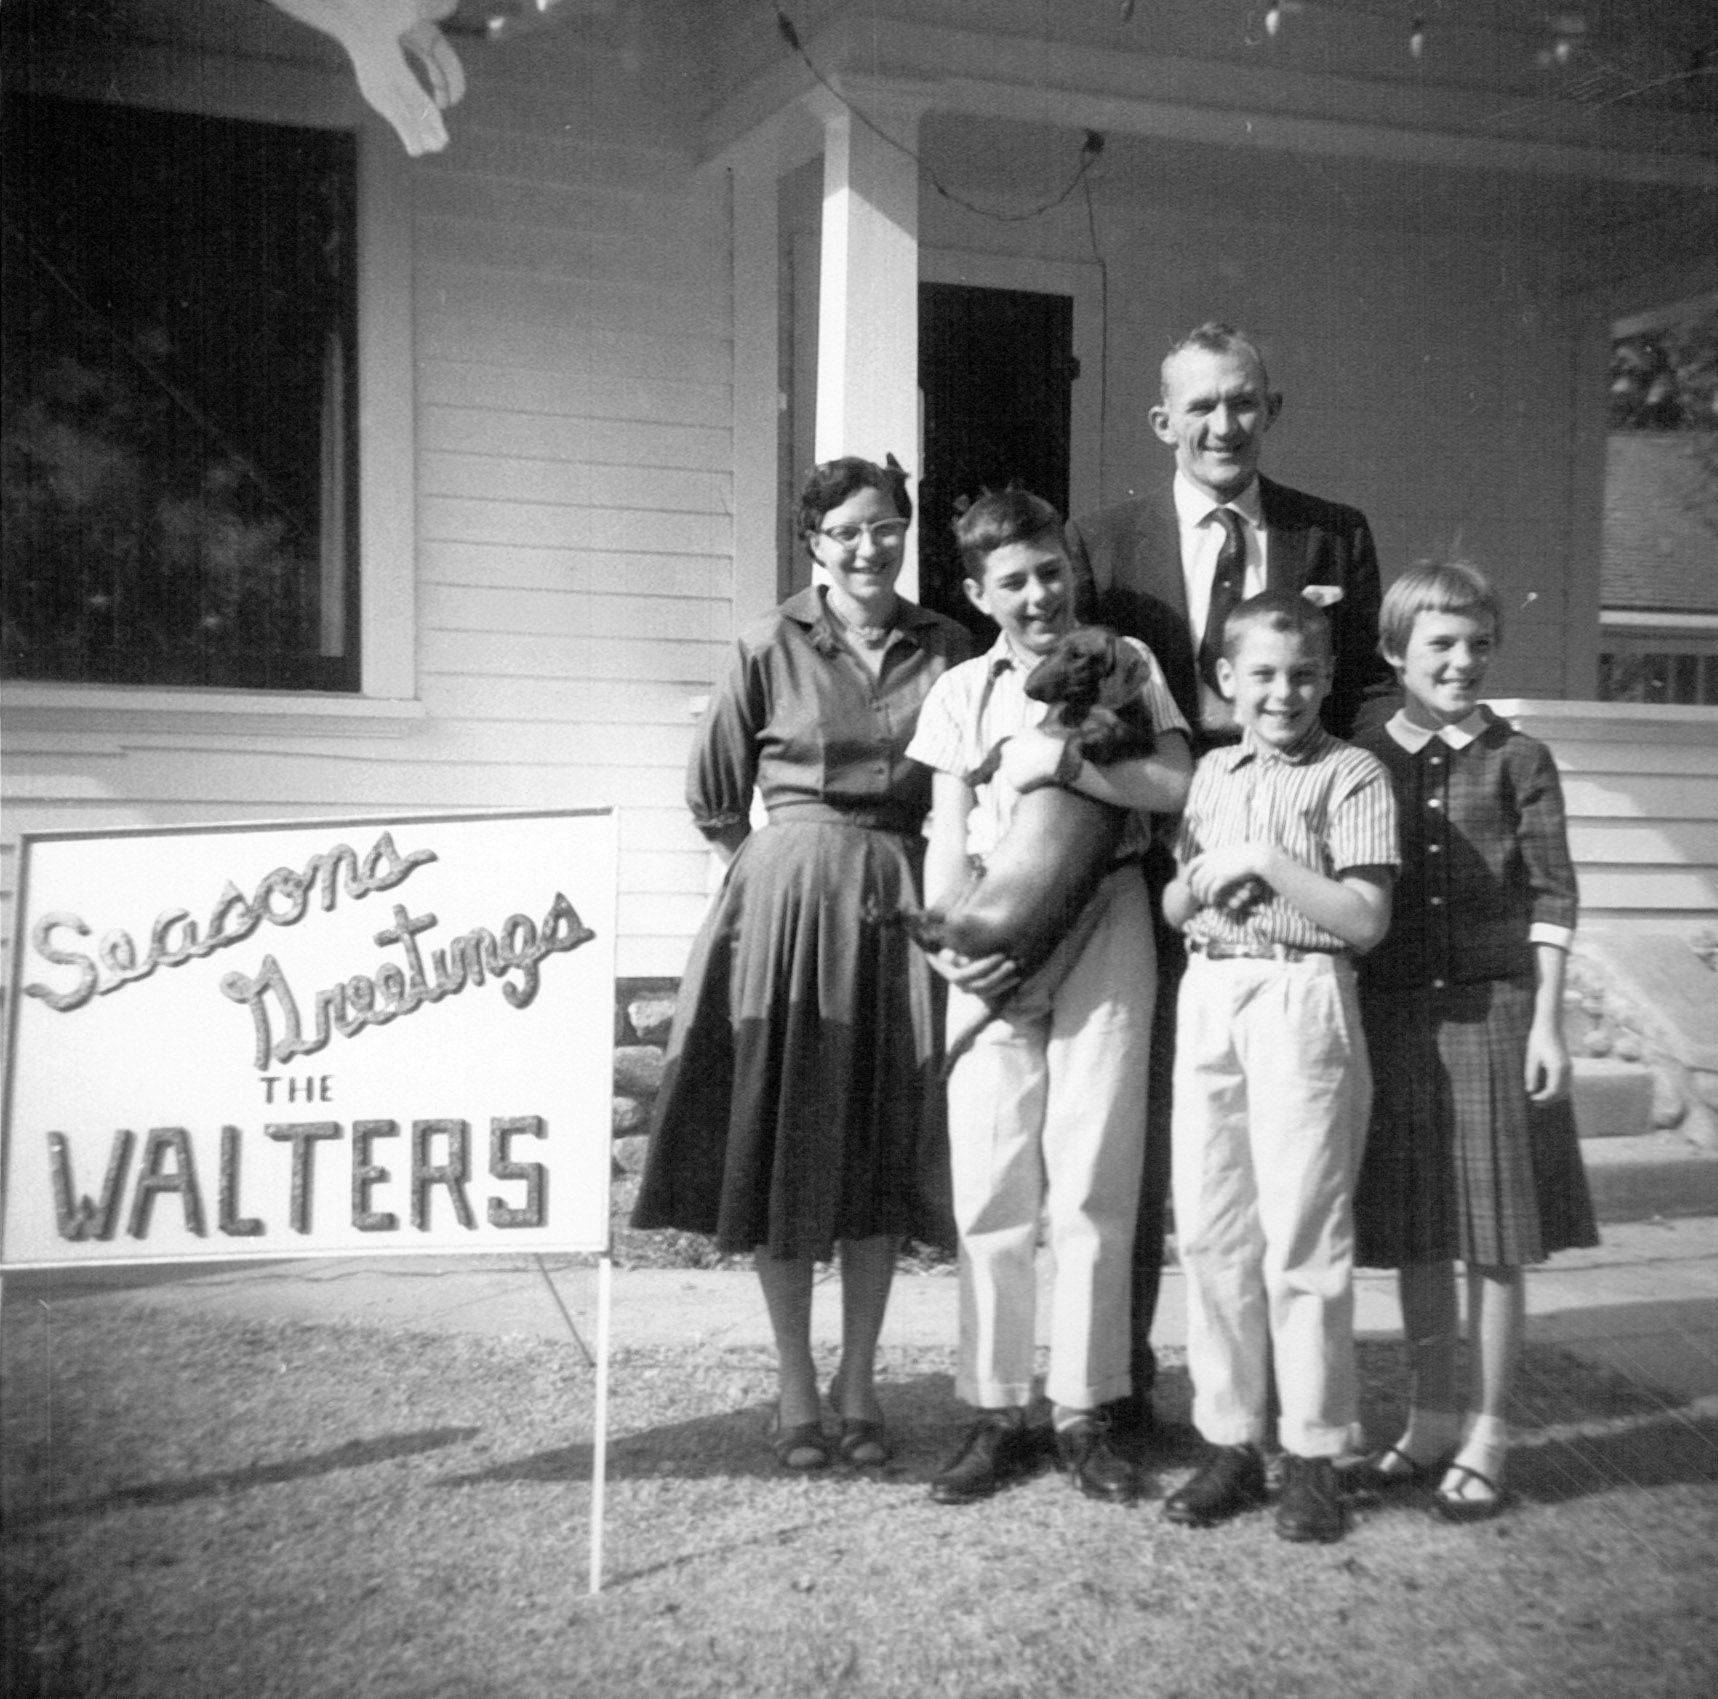 Willie, Jerry, and Dorothea with their parents in Upland, California, 1959.